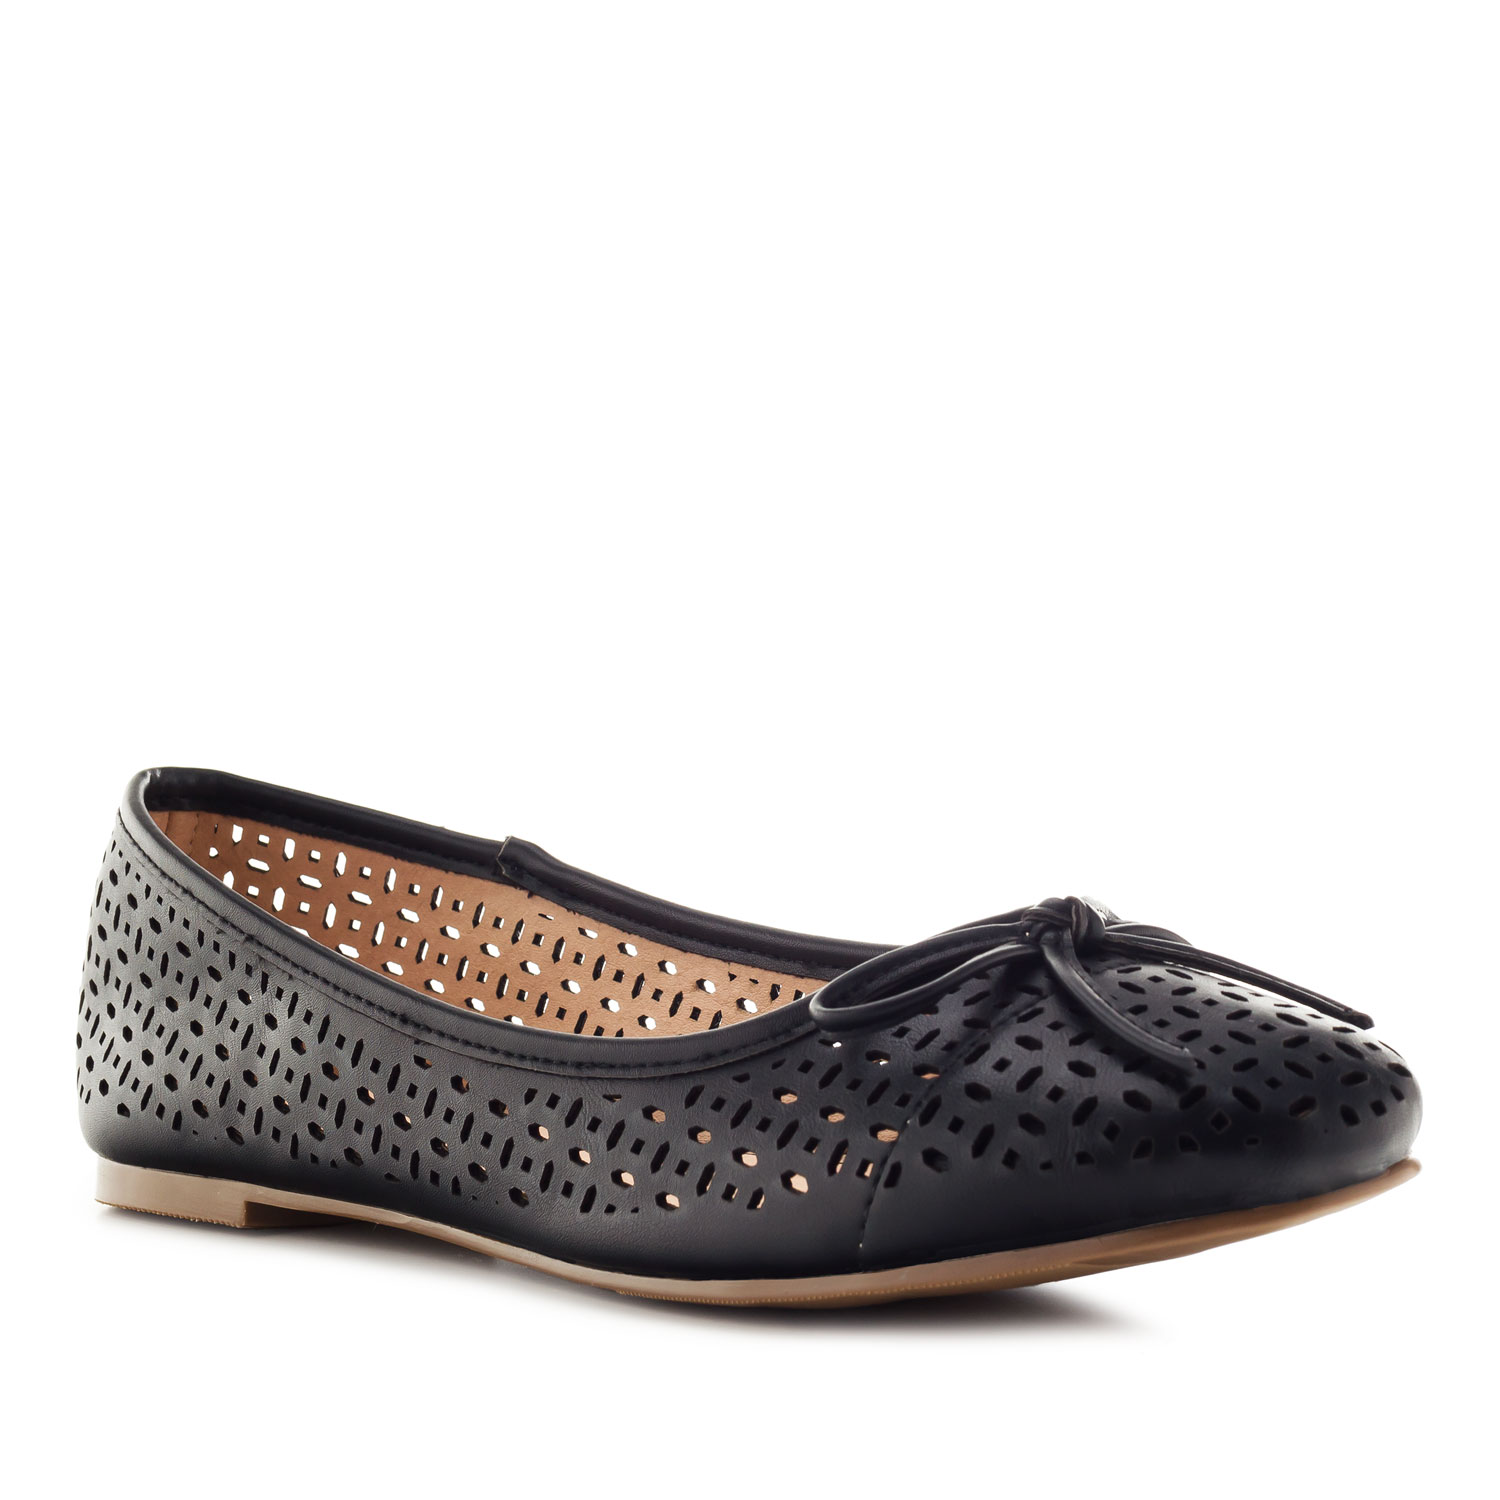 Die-cut Ballet Flats in Black faux Leather